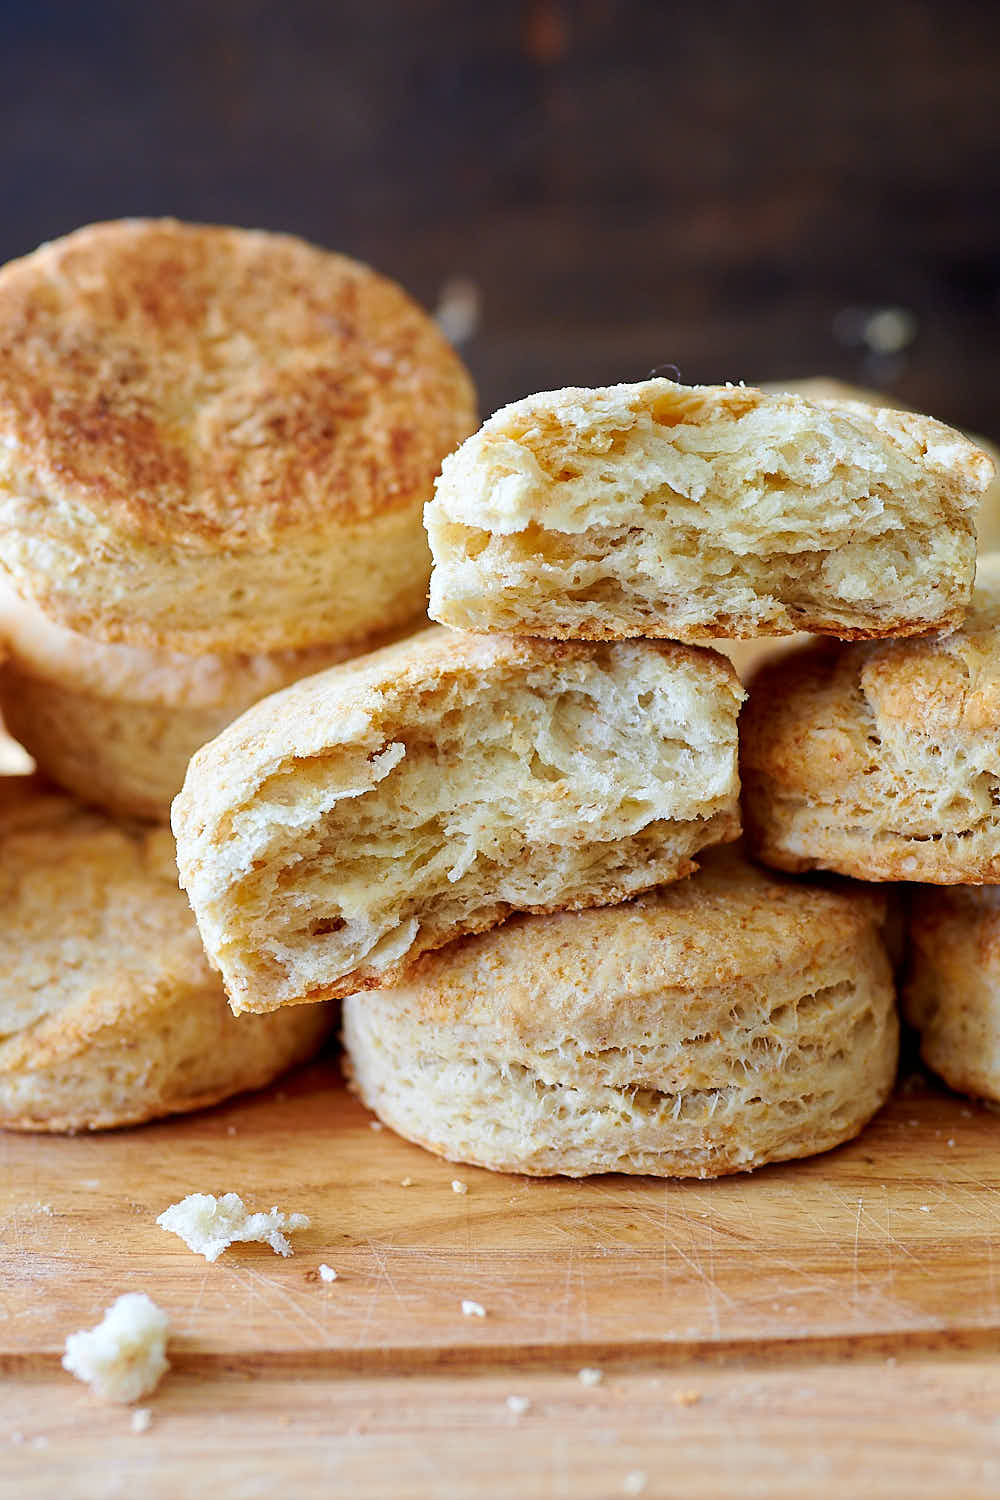 A pile of sourdough biscuits